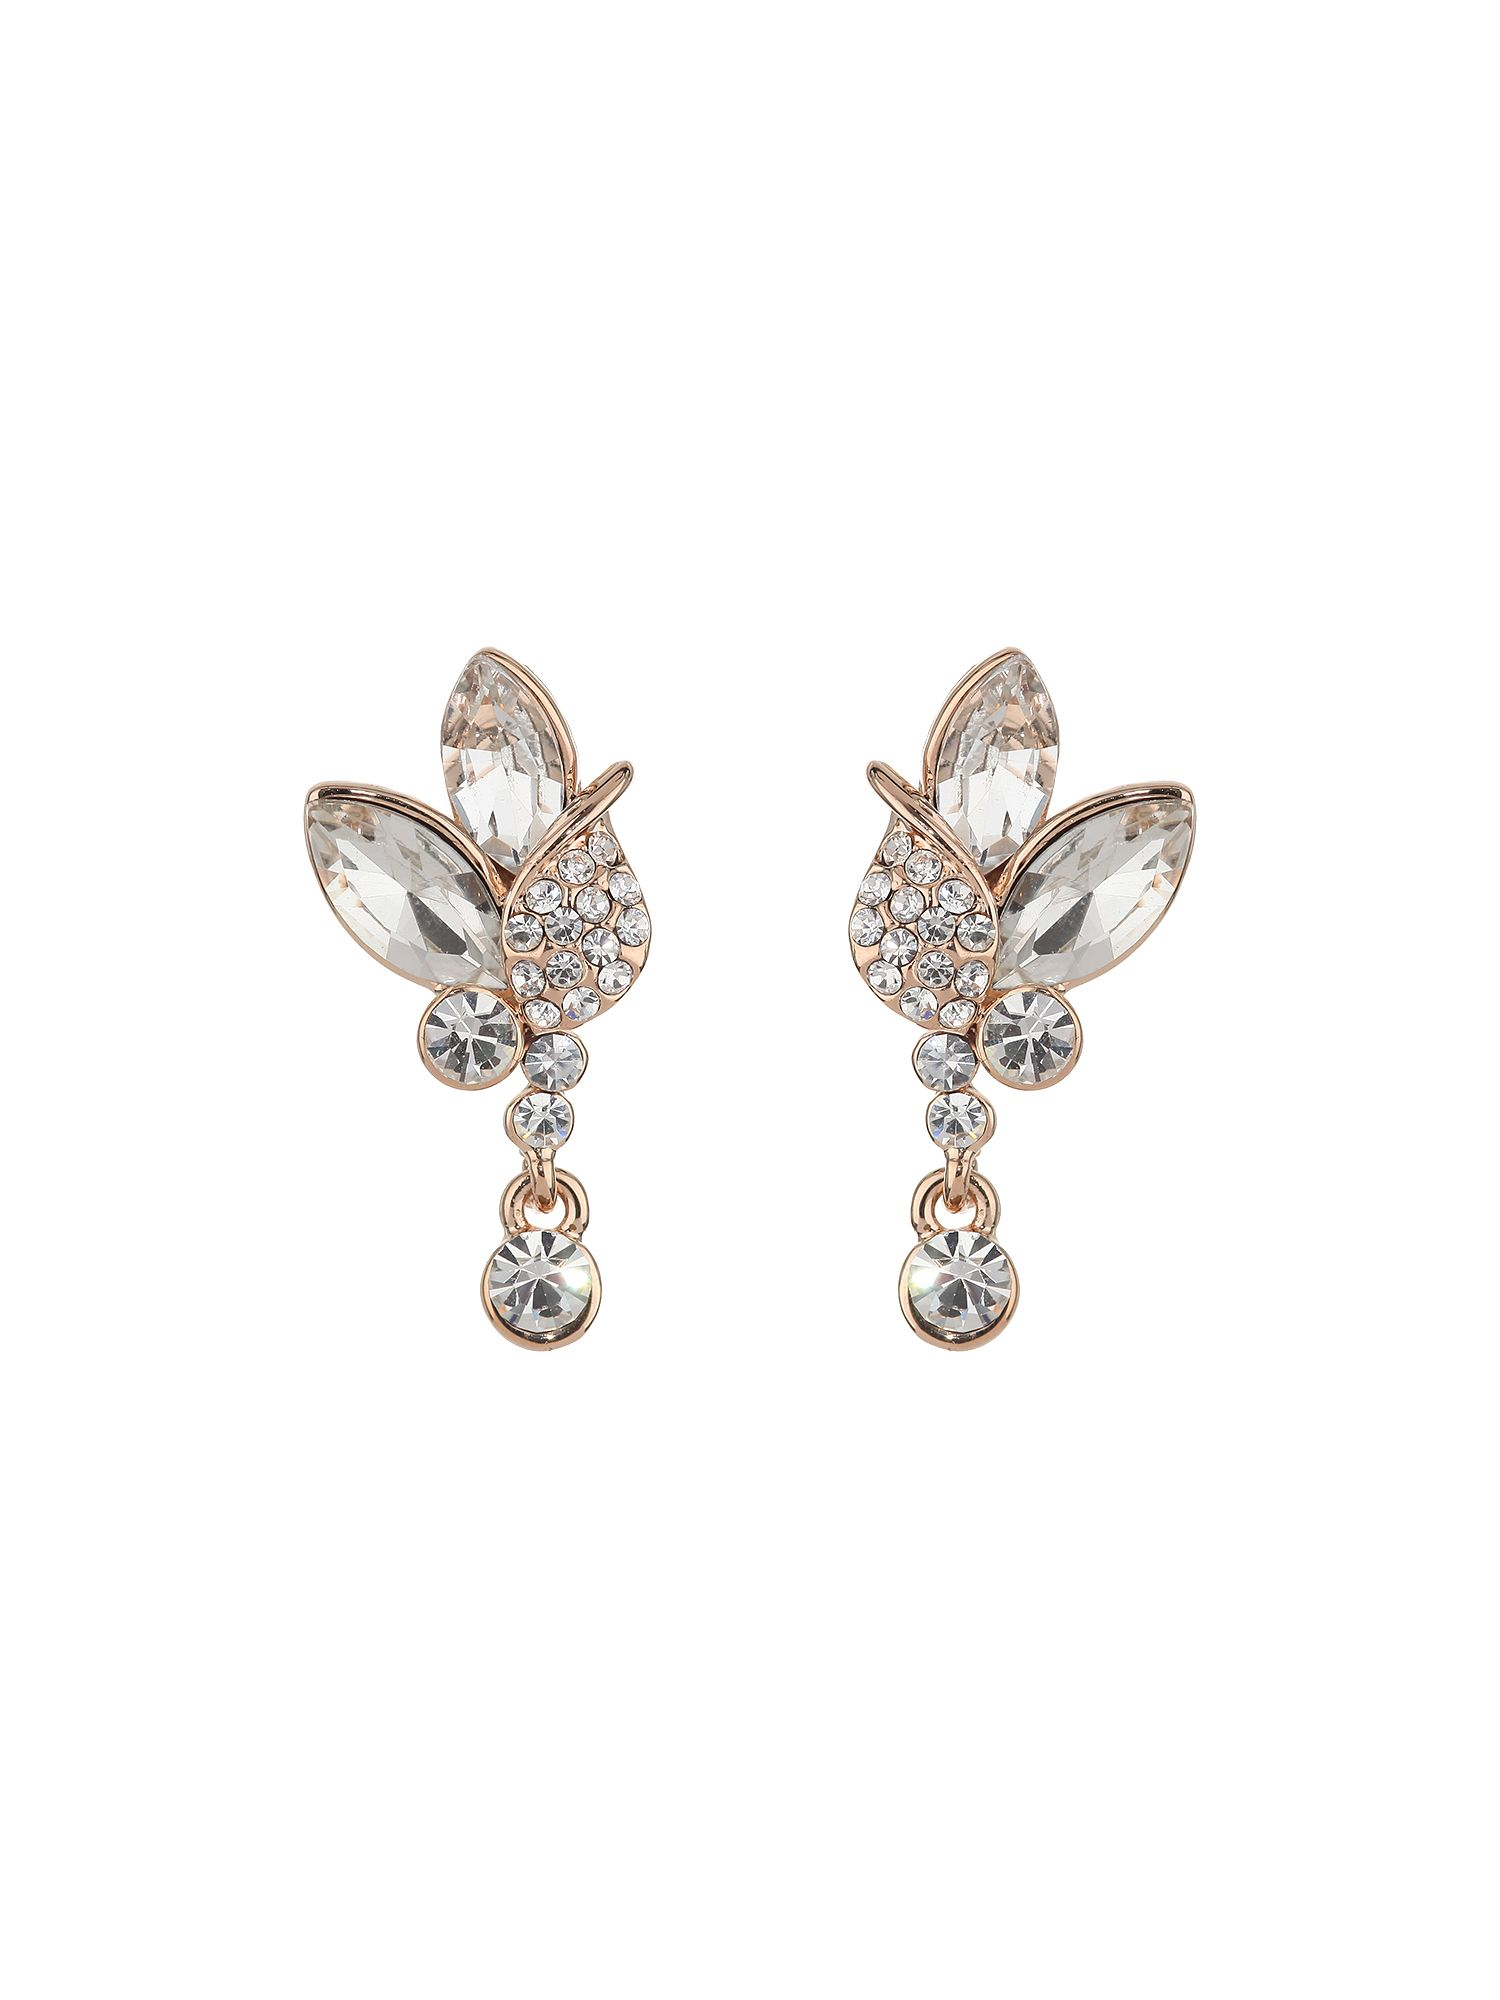 Flower shape stud earring